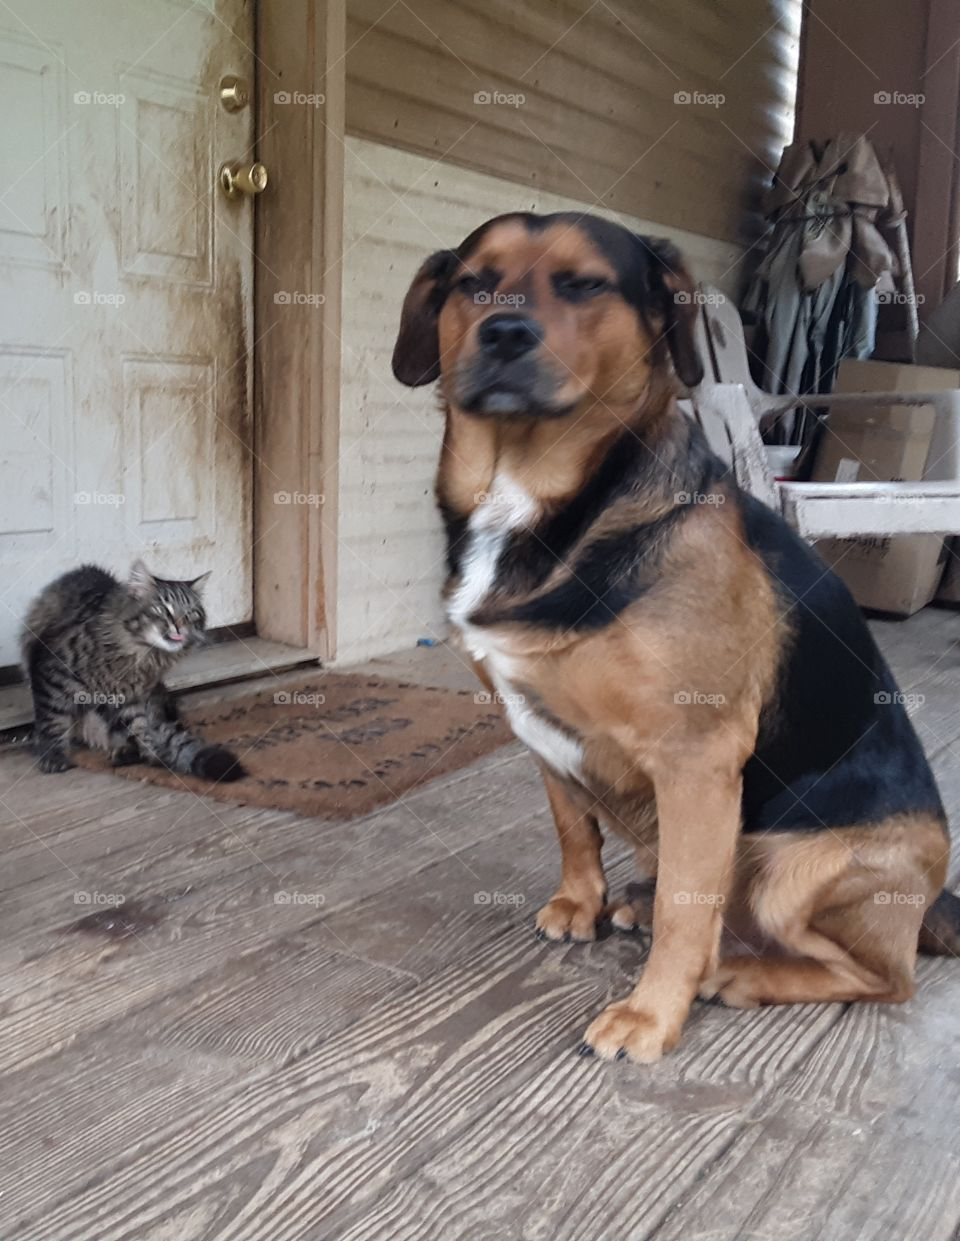 cat and dog best buds